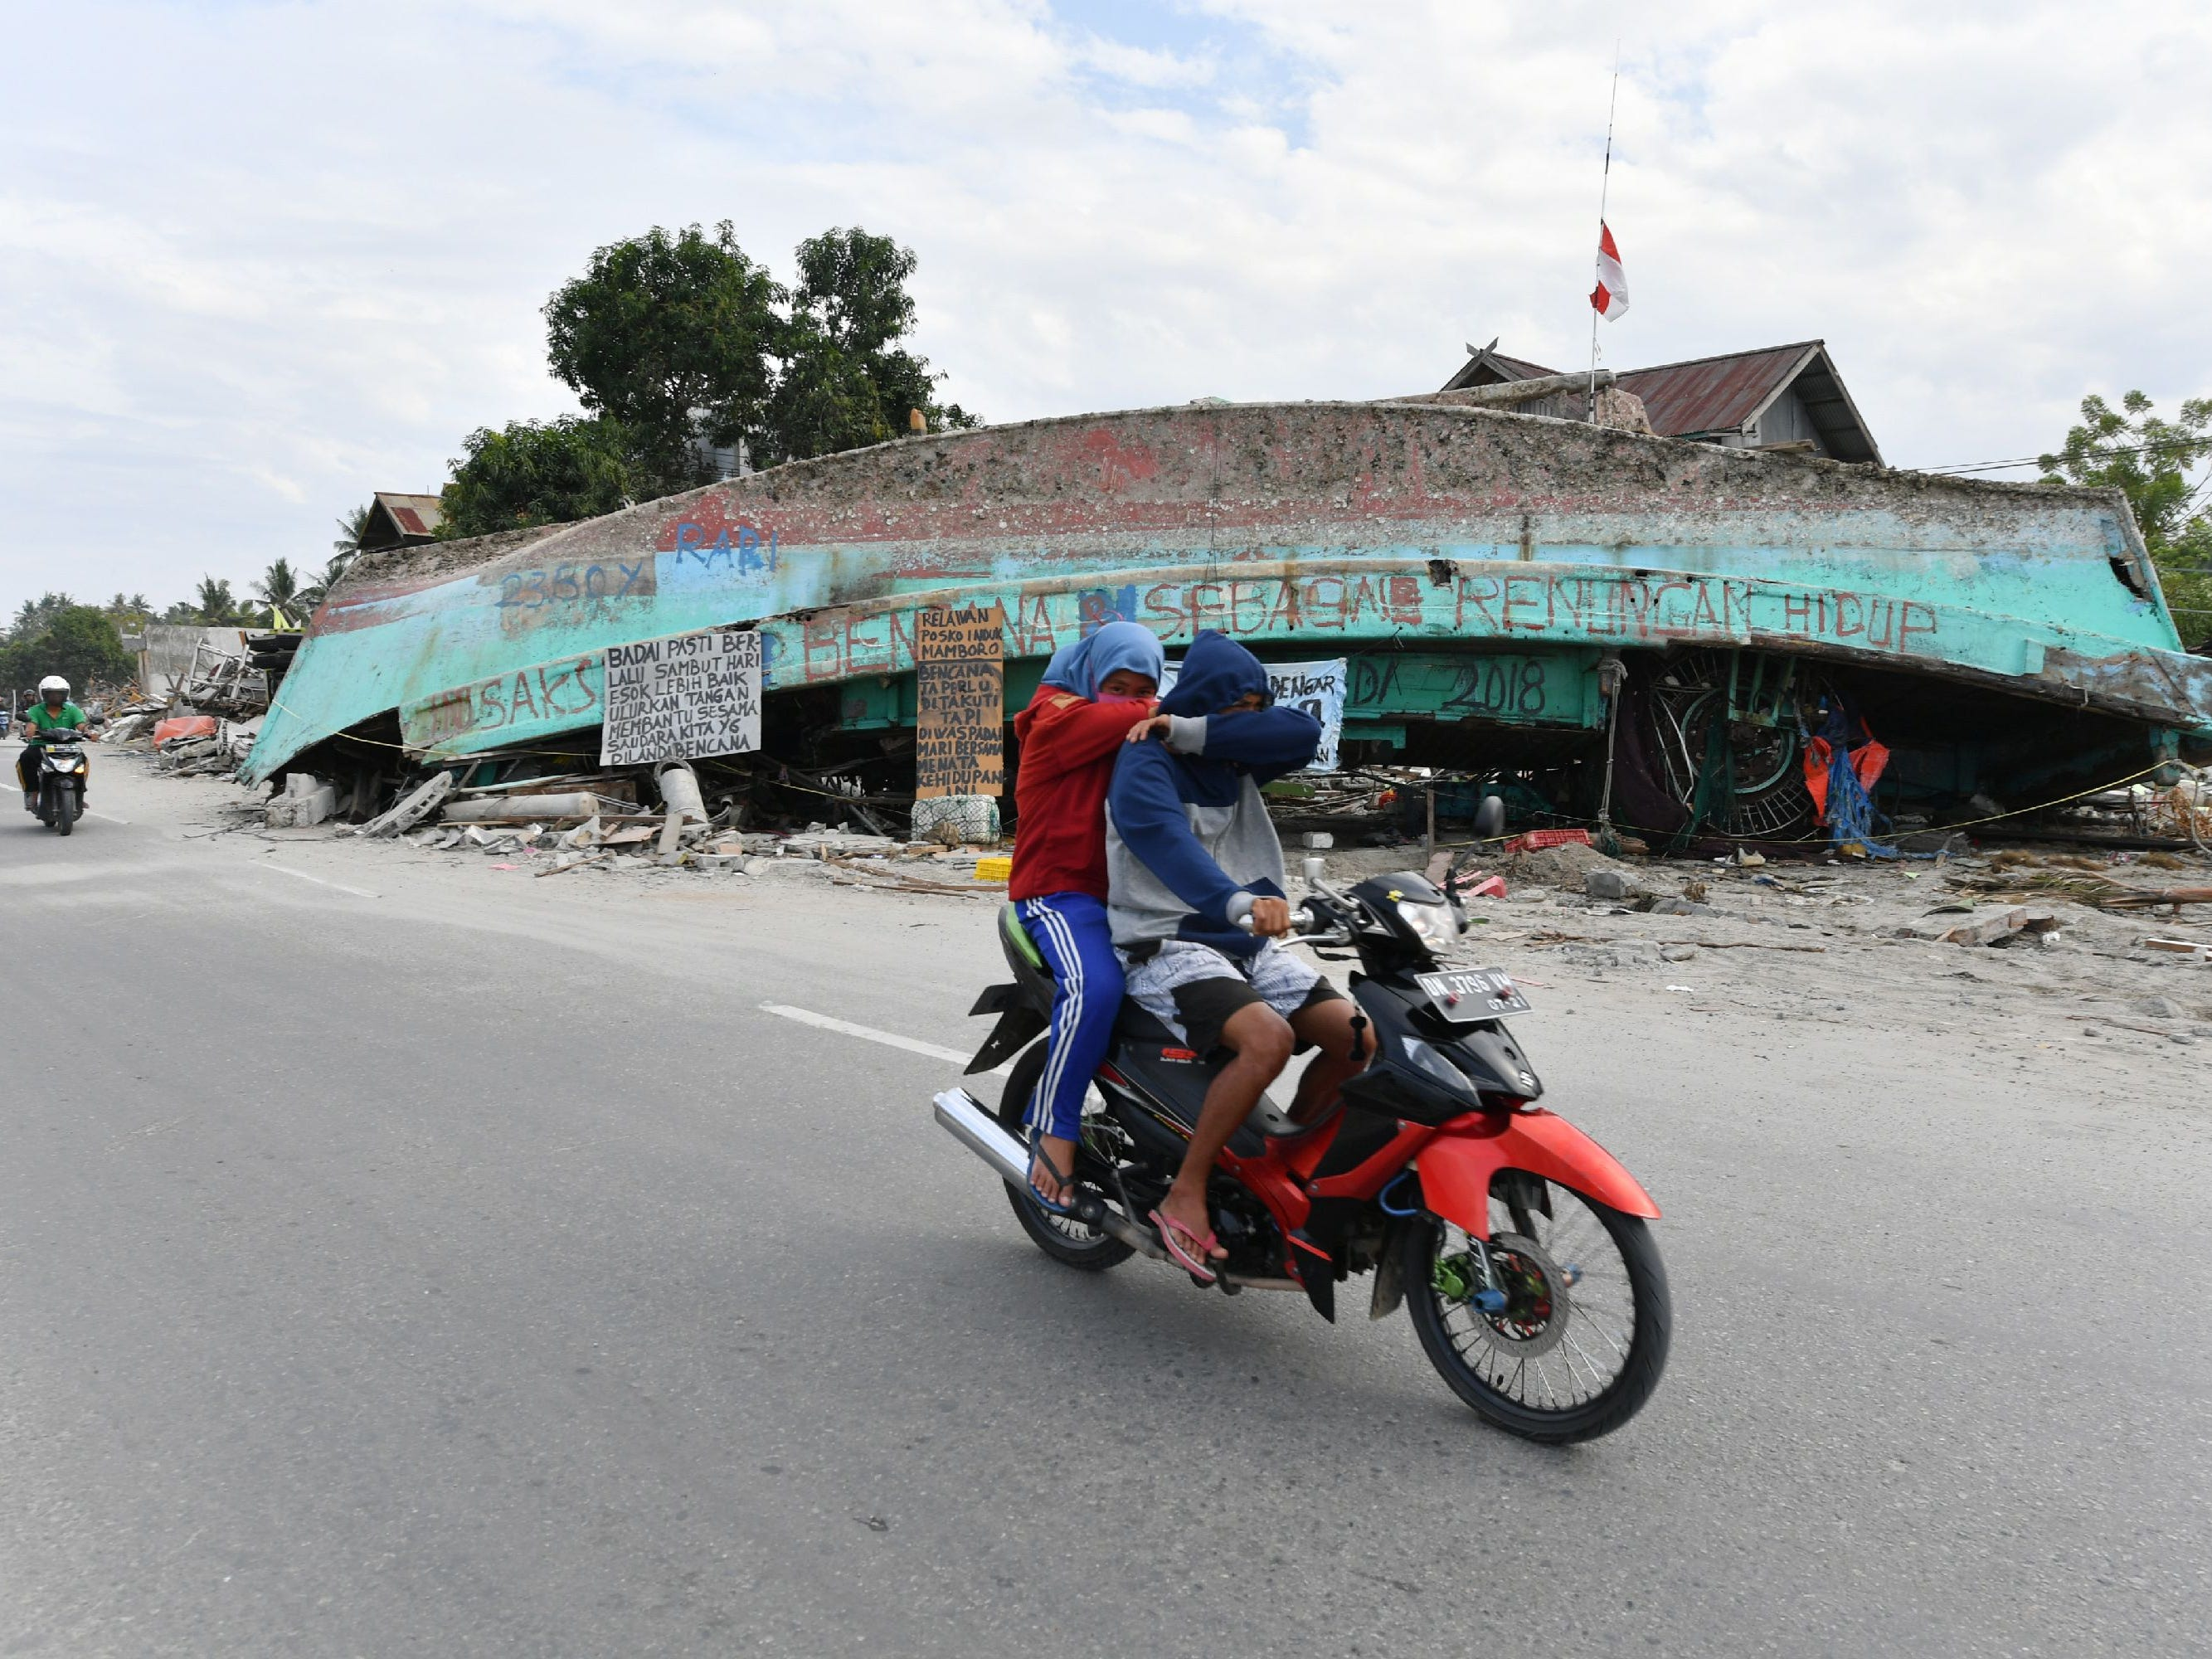 Motorists drive past an upside down boat in Mamboro, Indonesia's Central Sulawesi on Oct. 6, 2018, following the Sept. 28 earthquake and tsunami.